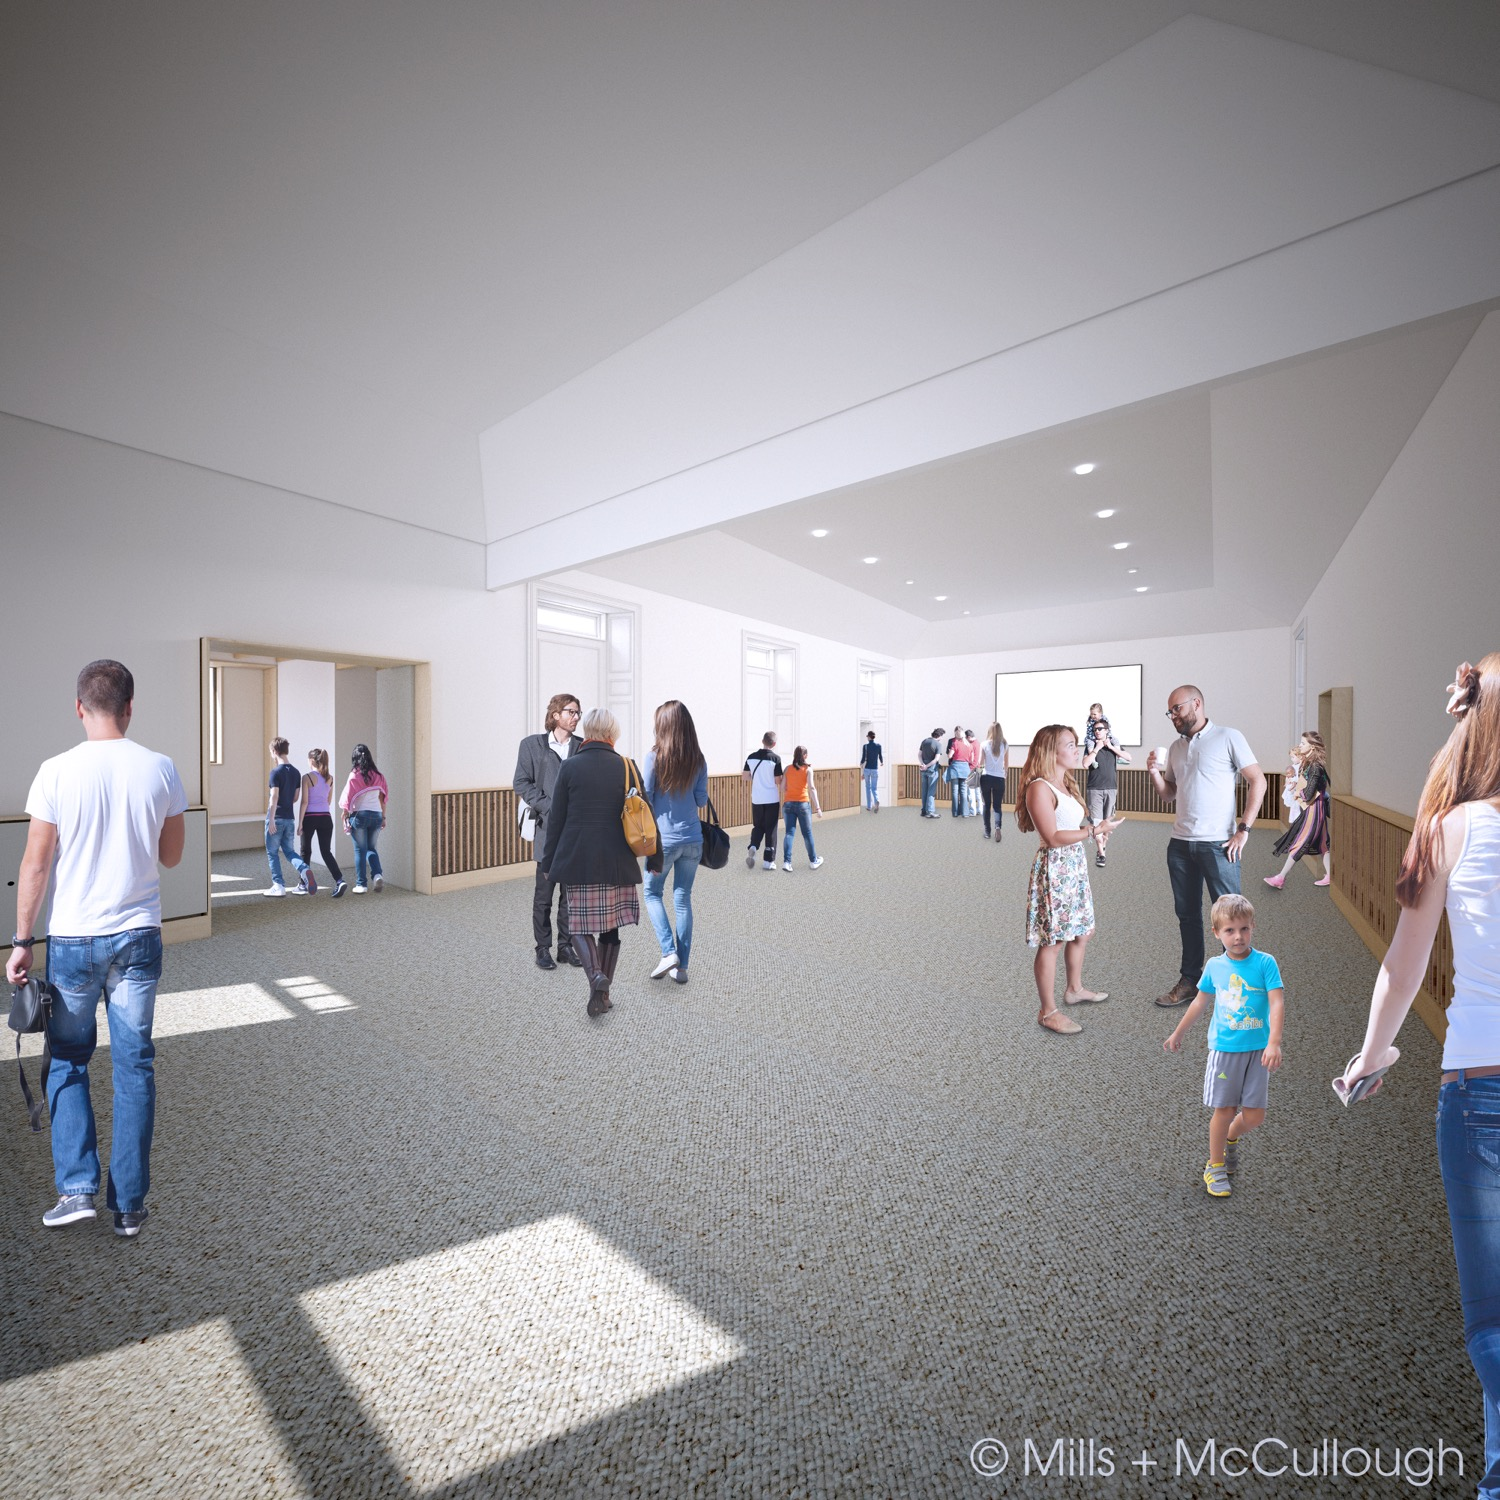 Visualisation of the main hall after the project